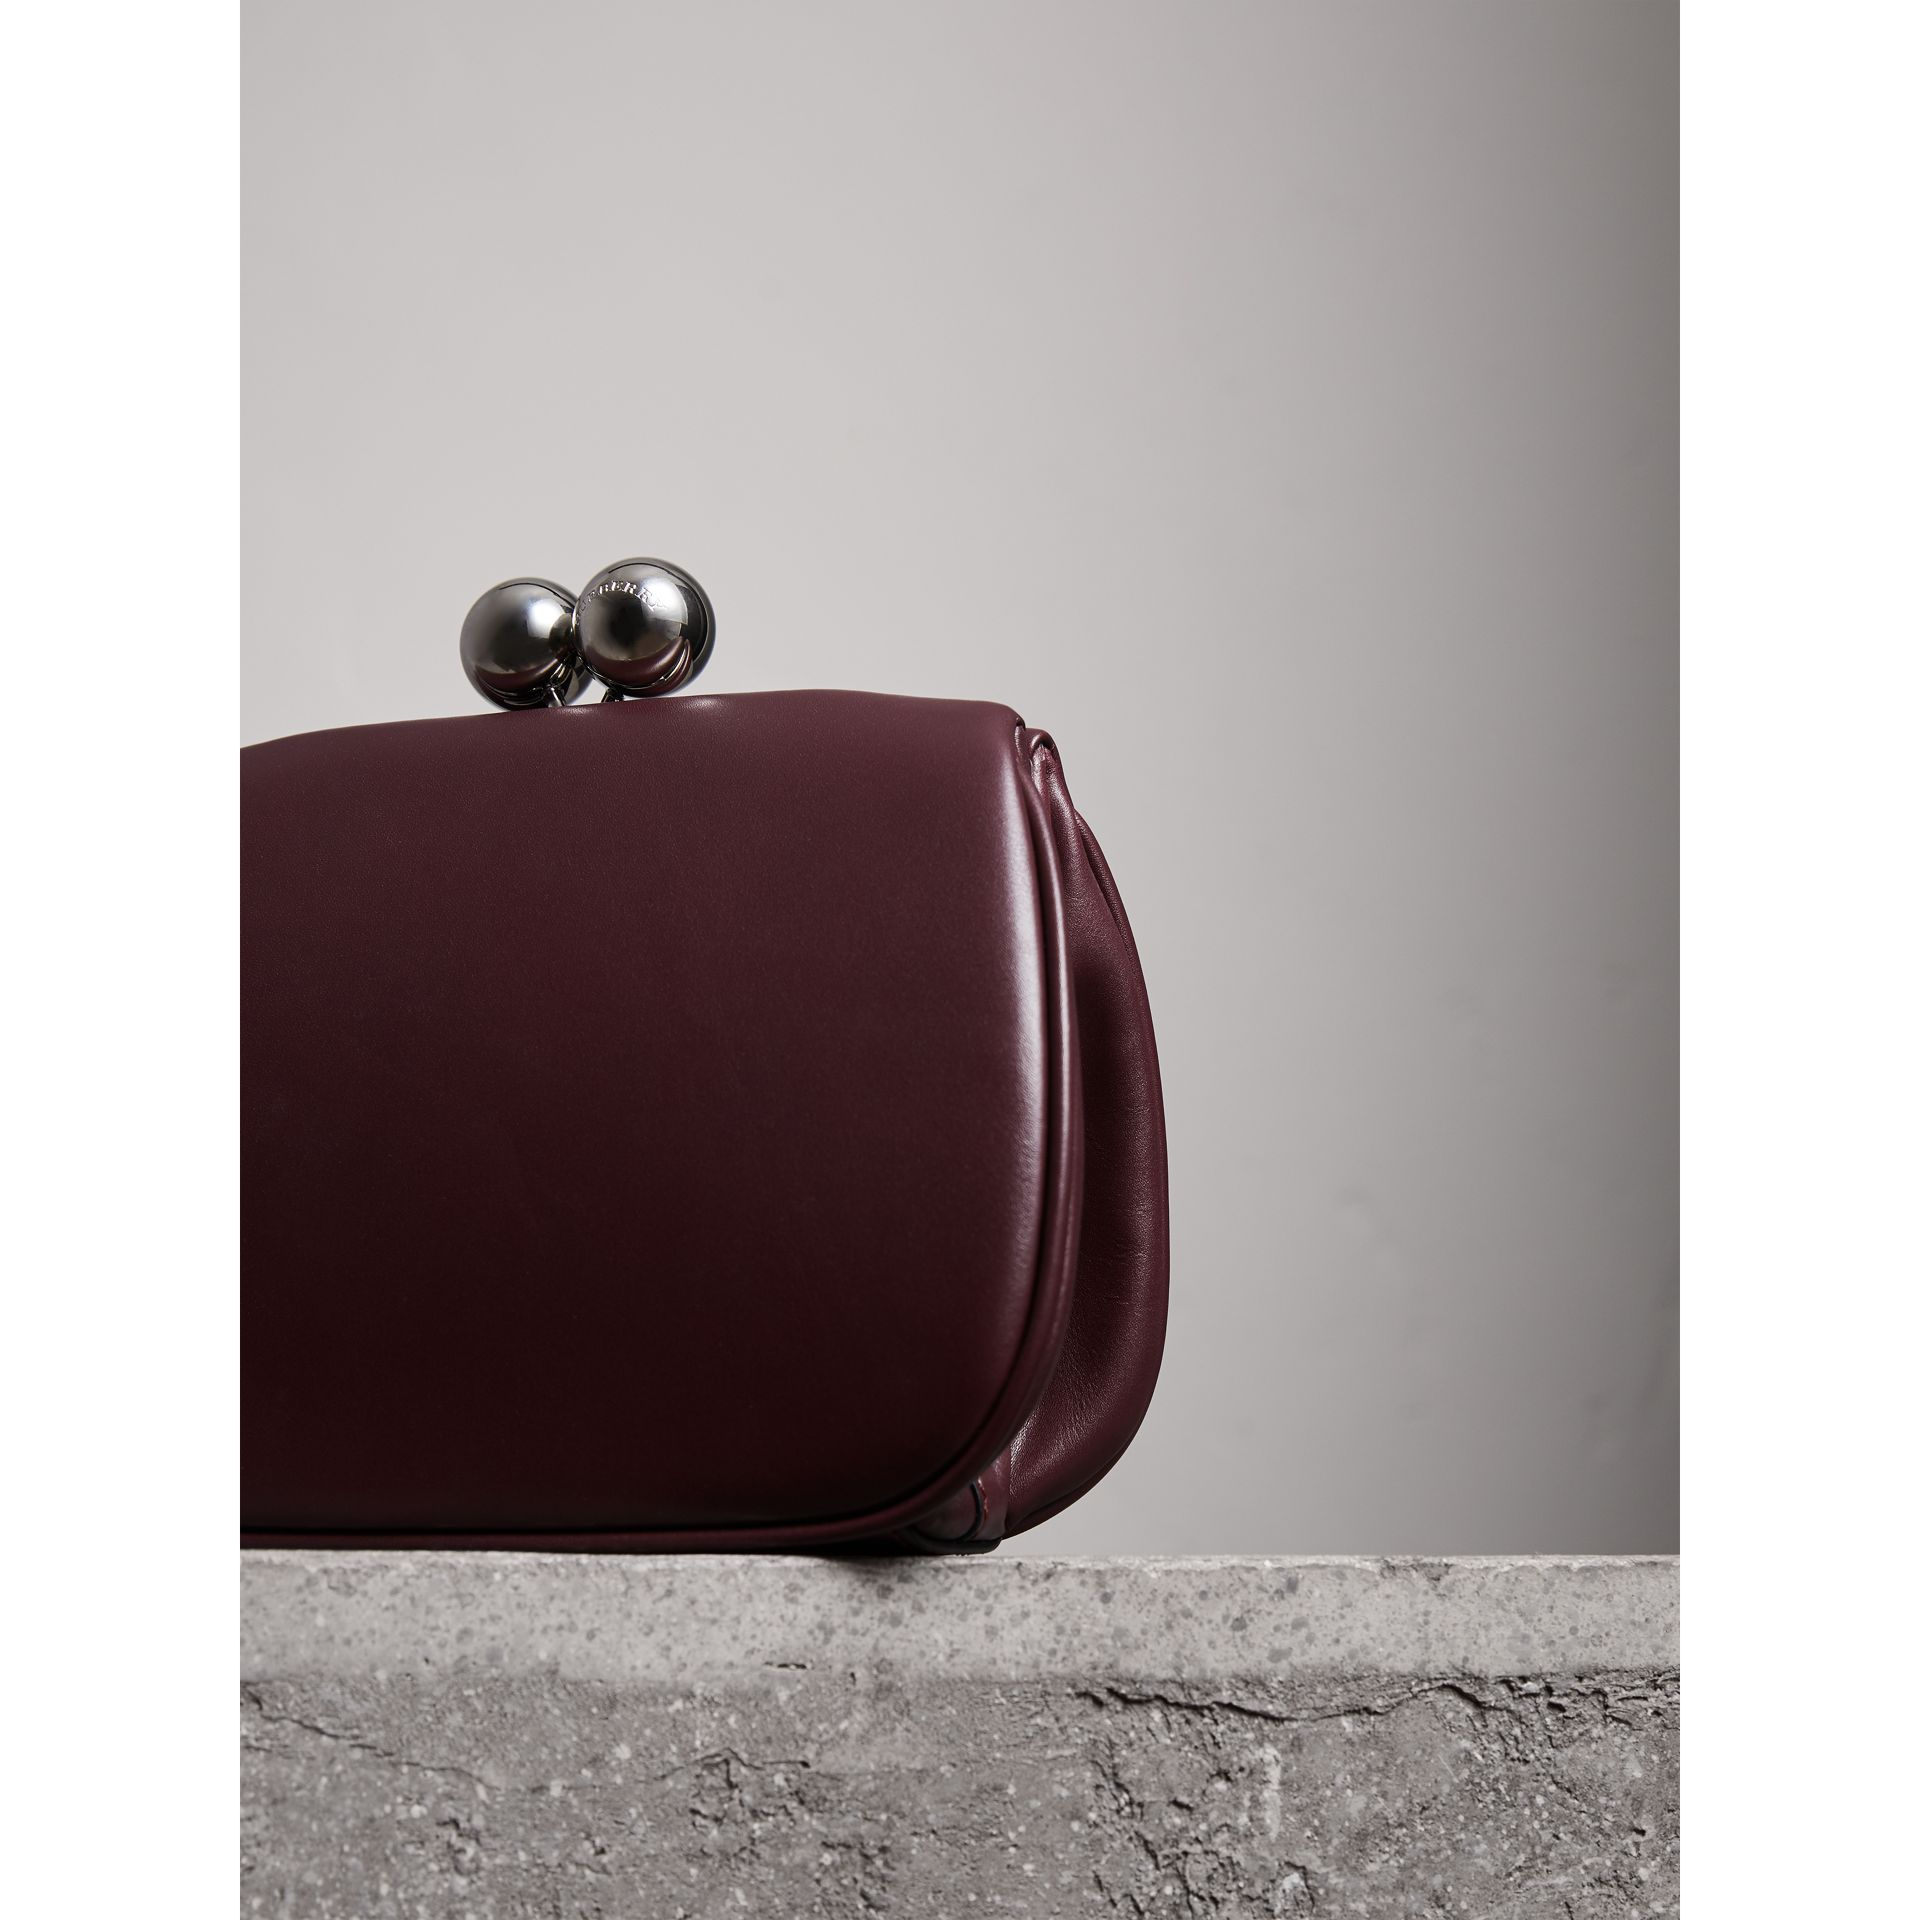 Small Leather Metal Frame Clutch Bag in Burgundy - Women | Burberry - gallery image 2